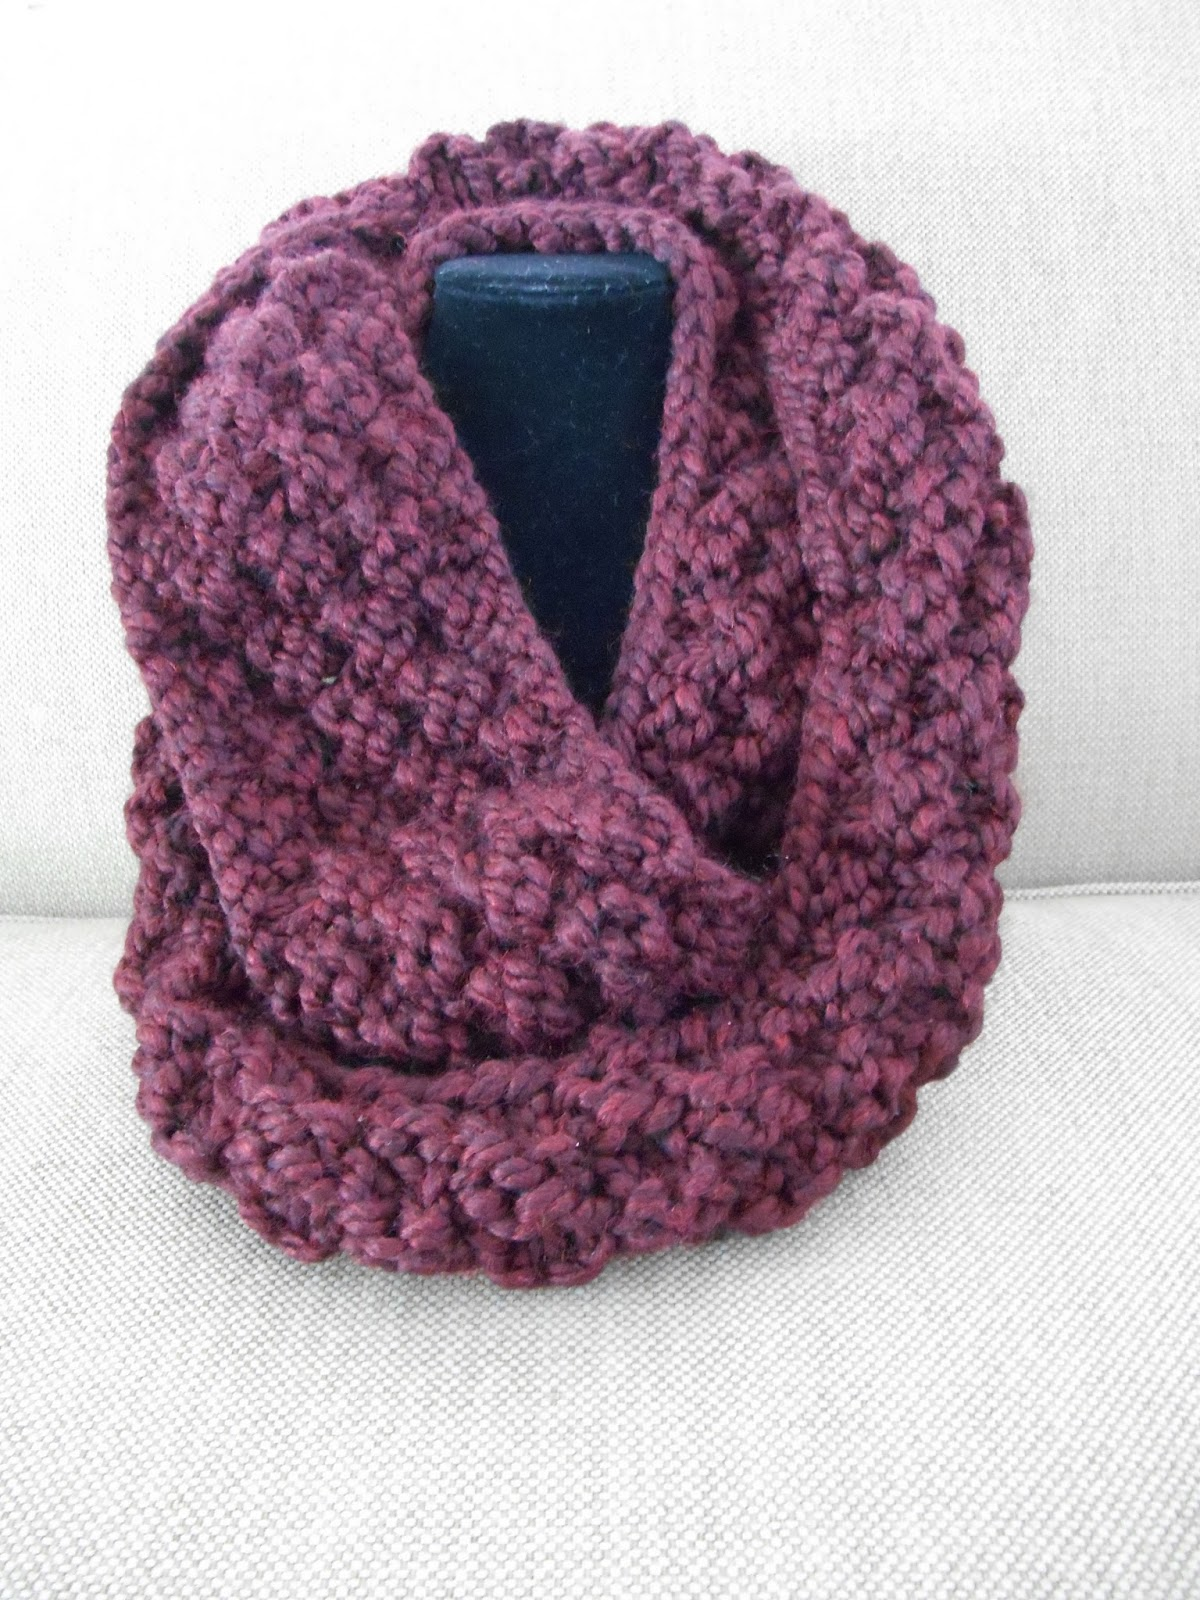 Infinity Scarf Knitting Pattern Thin Yarn : Knitting with Schnapps: Introducing the Neck Nuzzler ...